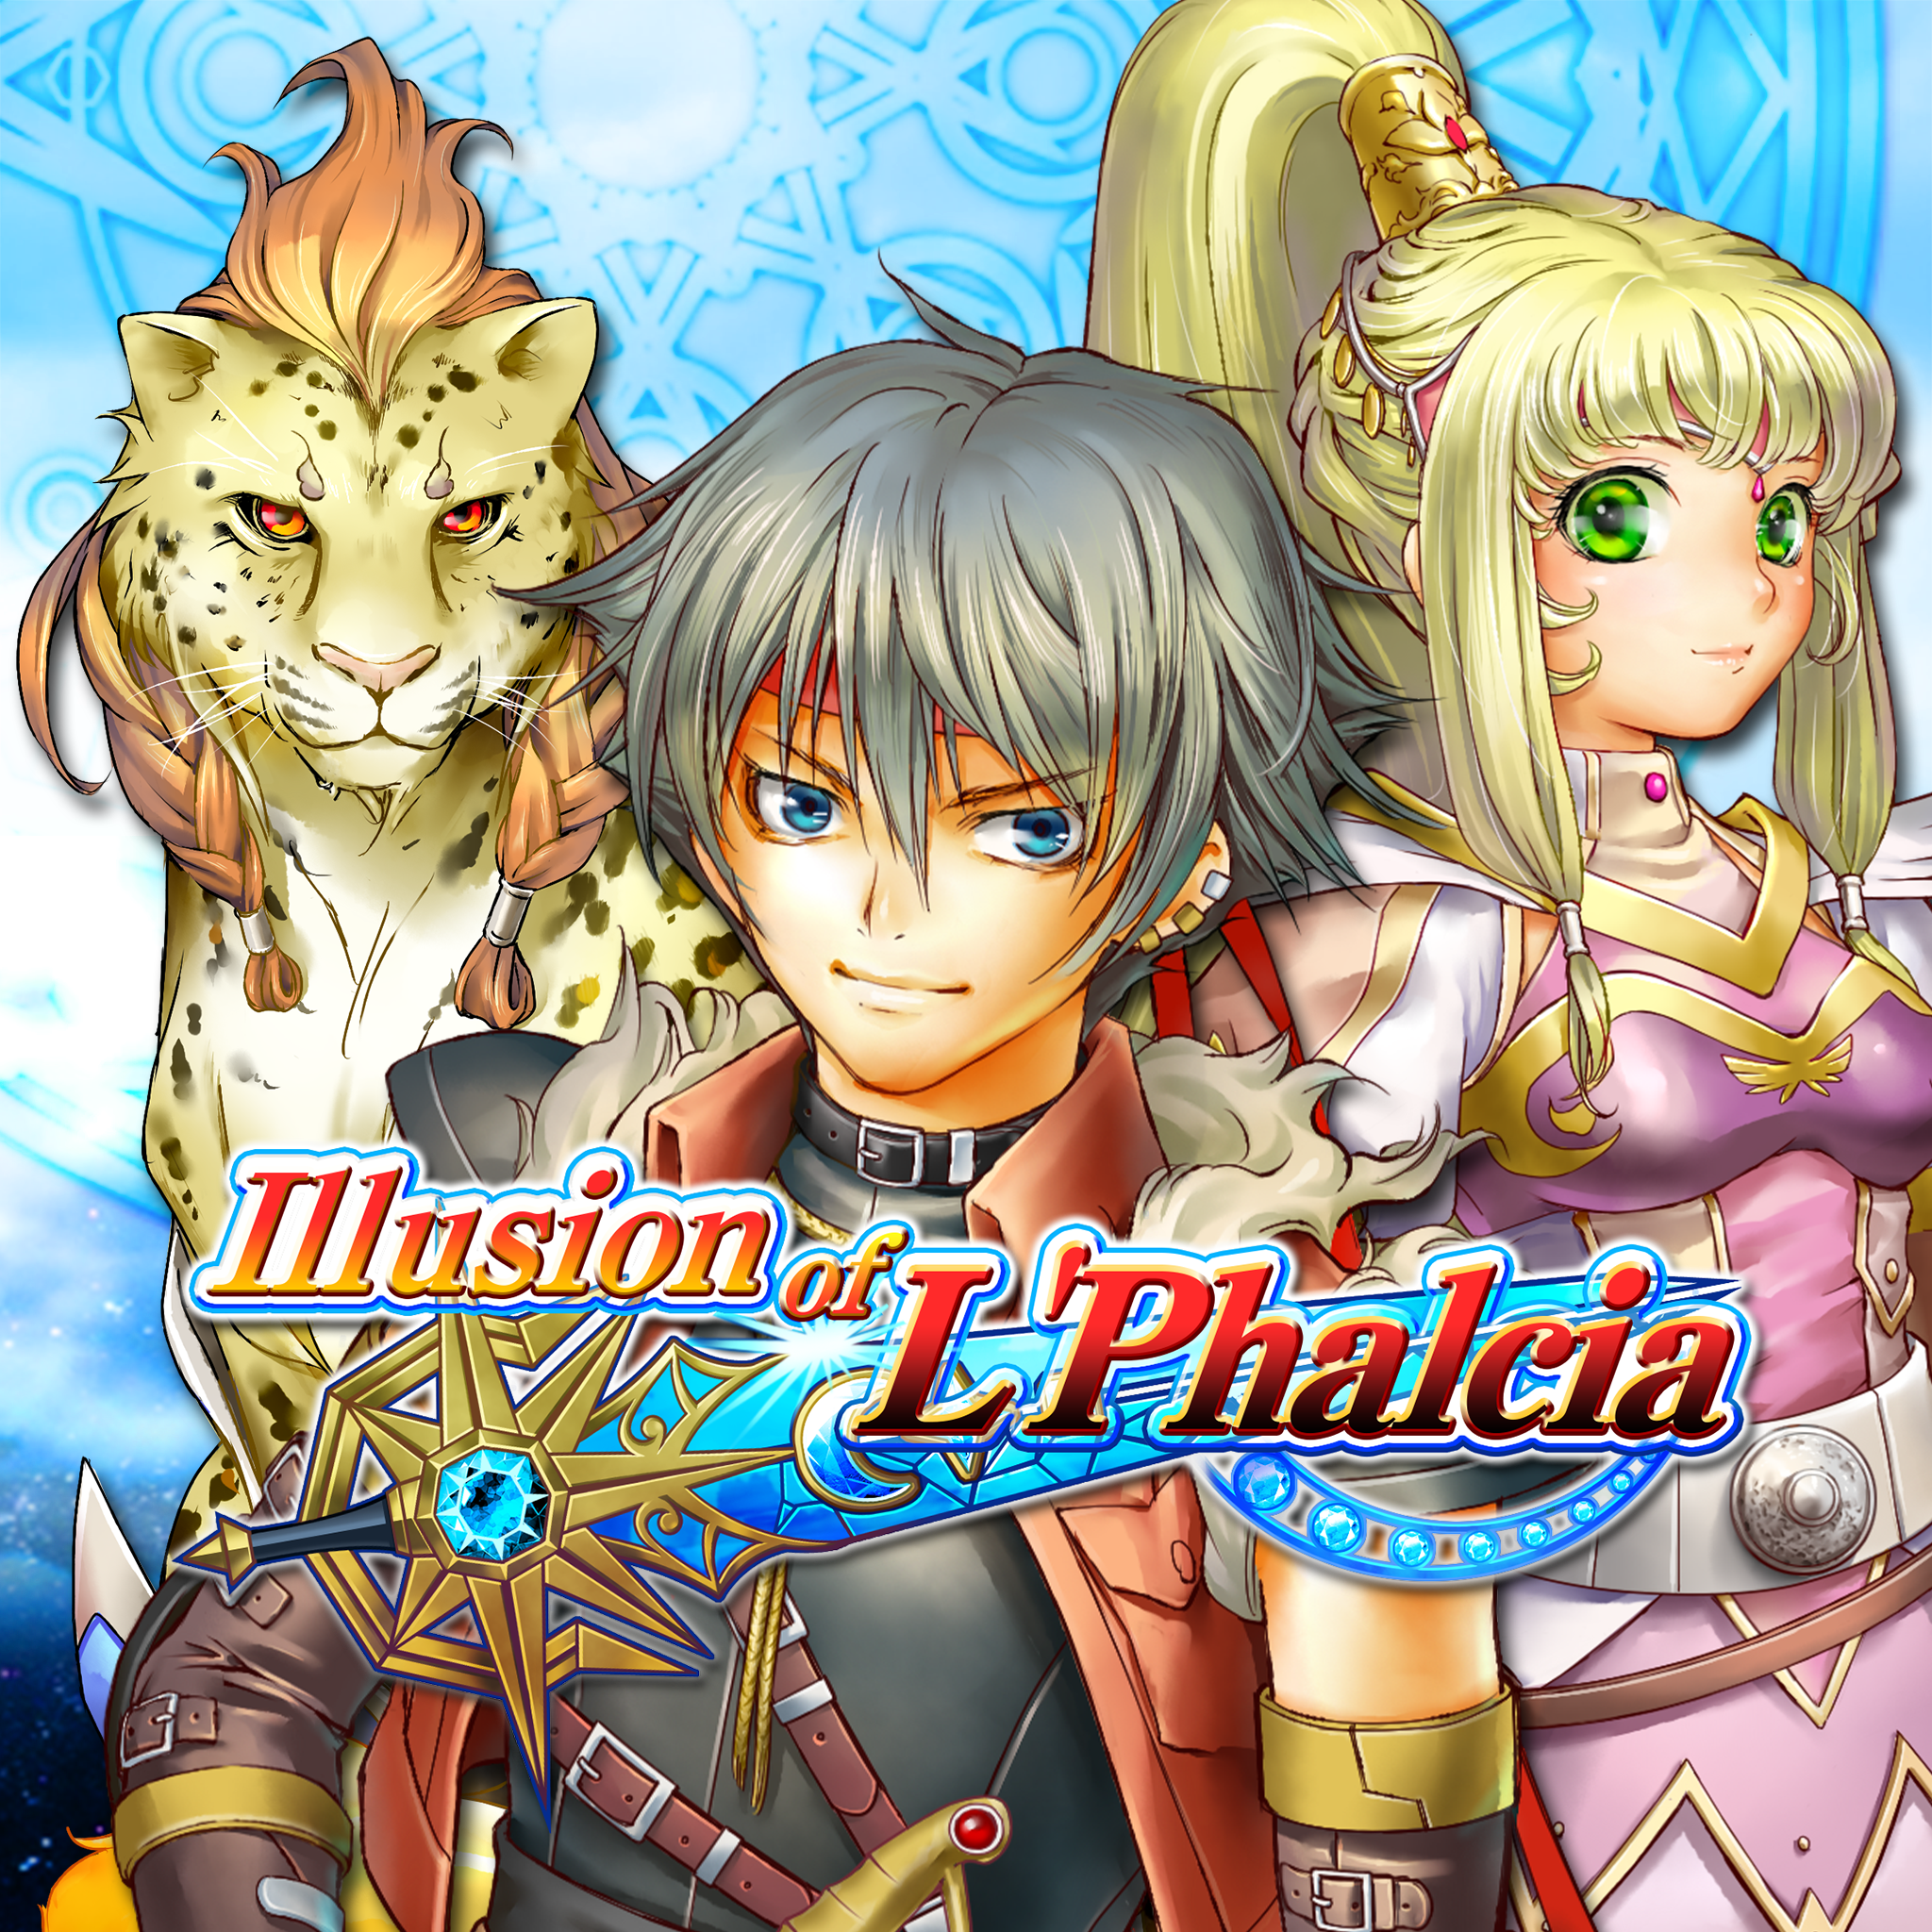 Thumbnail of Illusion of L'Phalcia on PS4